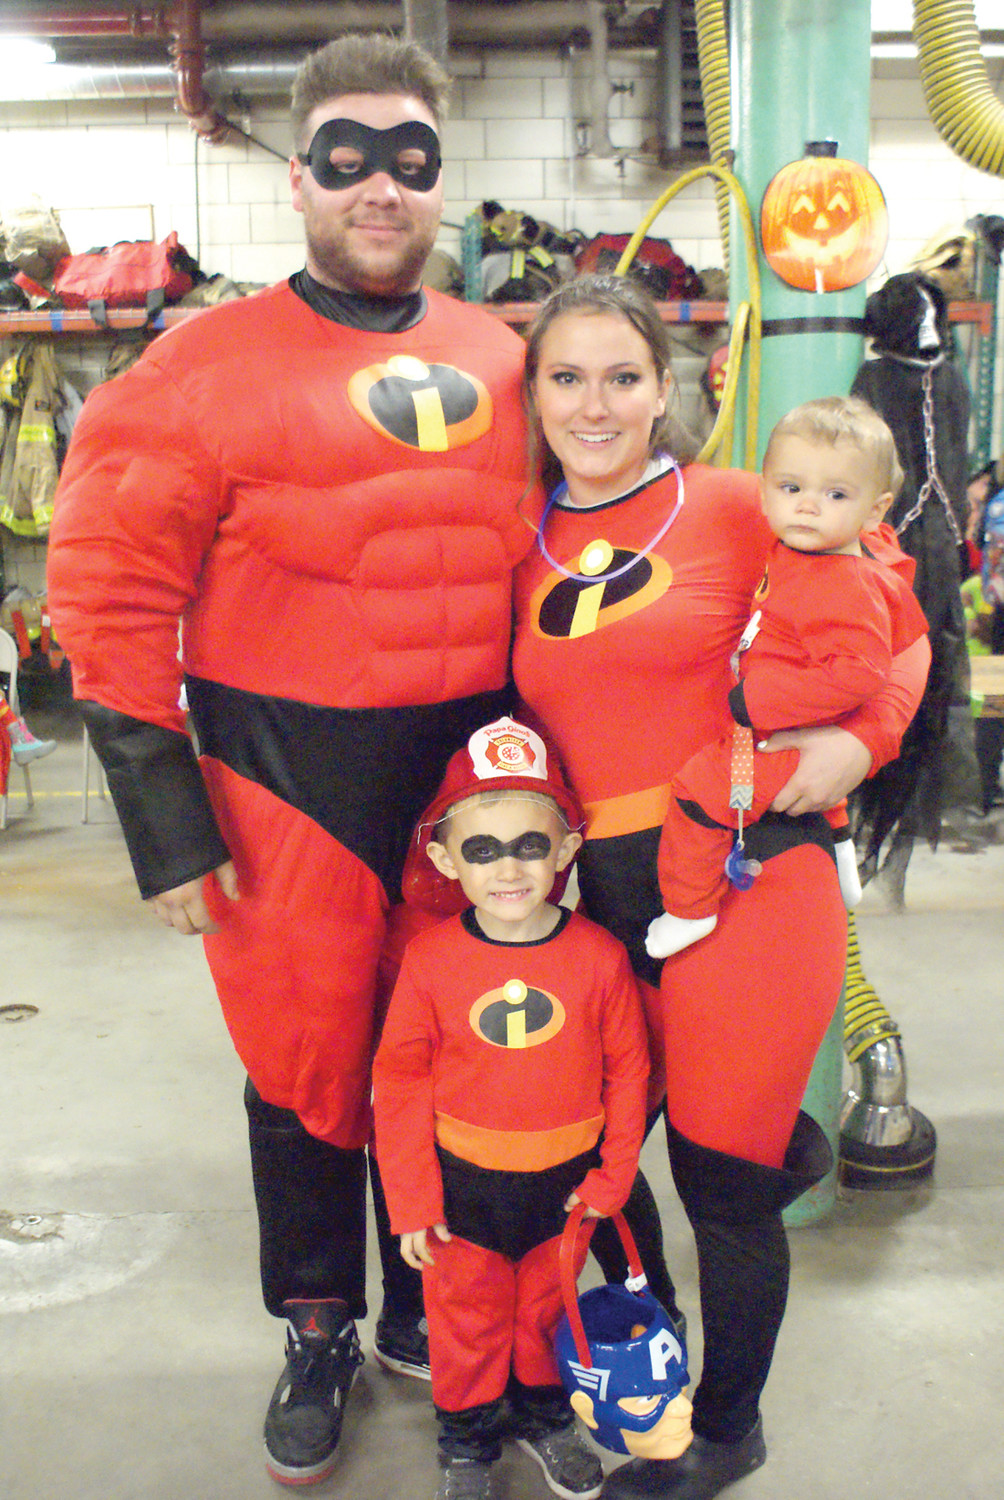 THE INCREDIBLES: Stopping by Fire Station 2 on Halloween night were the Incredibles portrayed by the Reardon Family. Raised in Cranston, Robert Reardon, has been going to the fire department Halloween Party and now brings his family; Briecen, age 3, and wife Michaela who is holding Robert Jr., age 8 months.